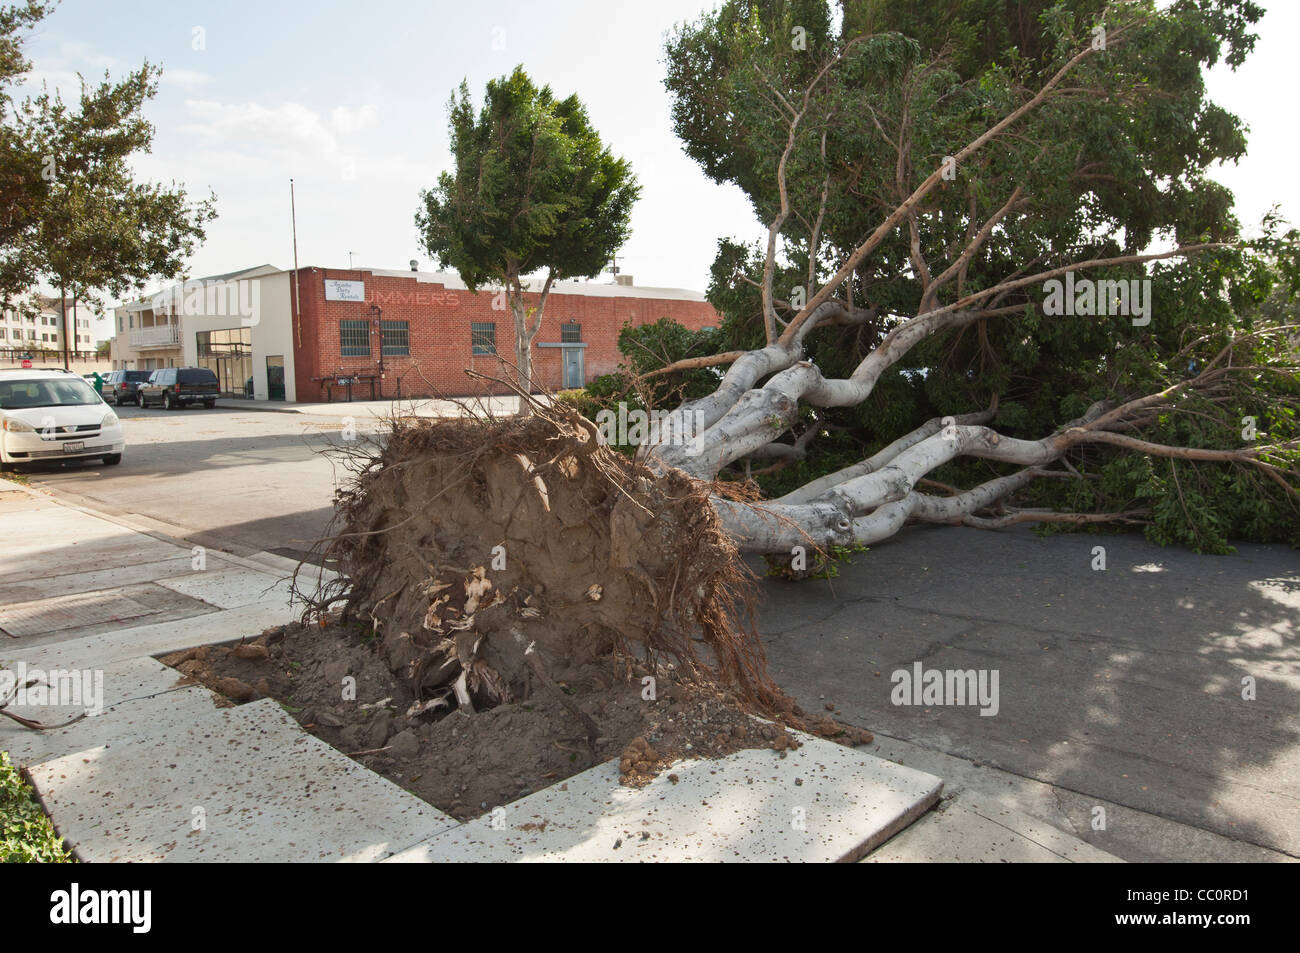 A collapsed tree due to severe winds. Hurricane strength winds knocked down a huge number of trees. - Stock Image